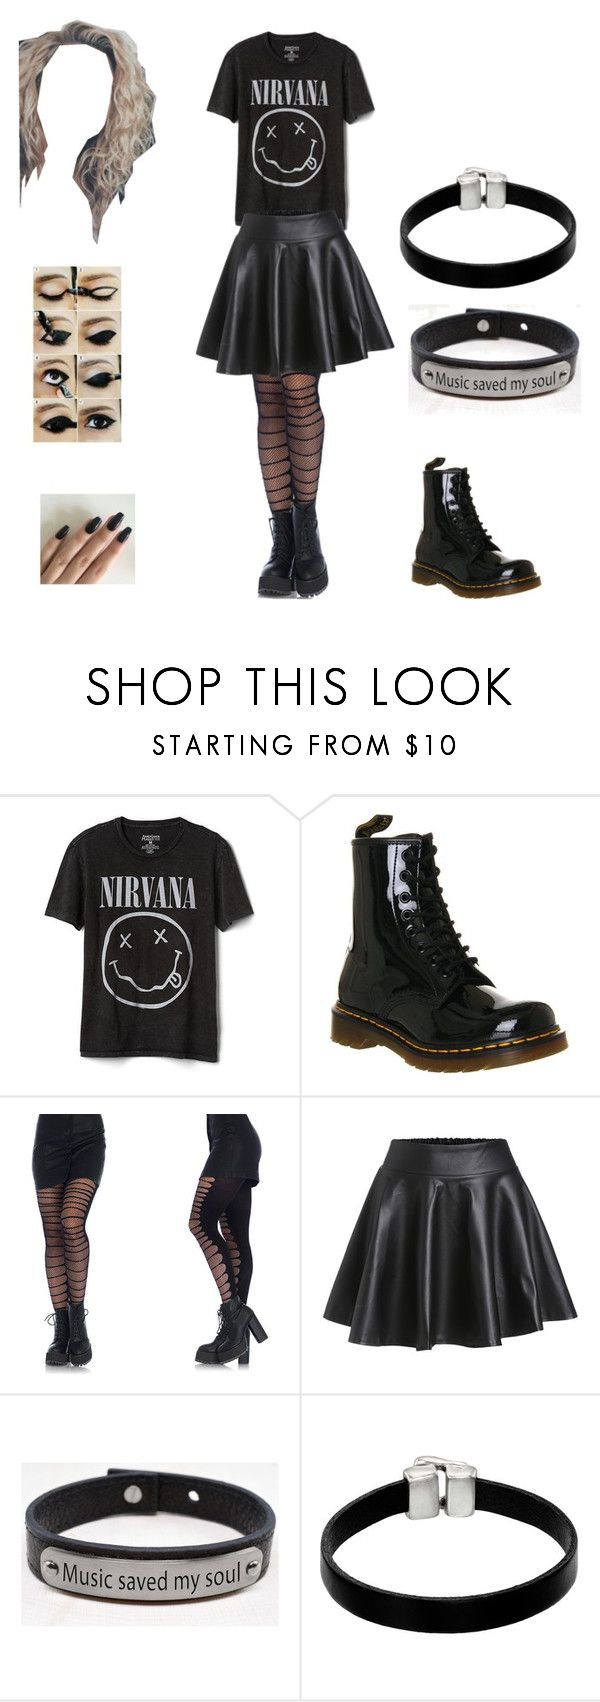 """Smells like the only nirvana song you know😂😂😂😂"" by teen-fashion-icon ❤ liked on Polyvore featuring Gap, Dr. Martens, Leg Avenue, Pink Box and Unode50"